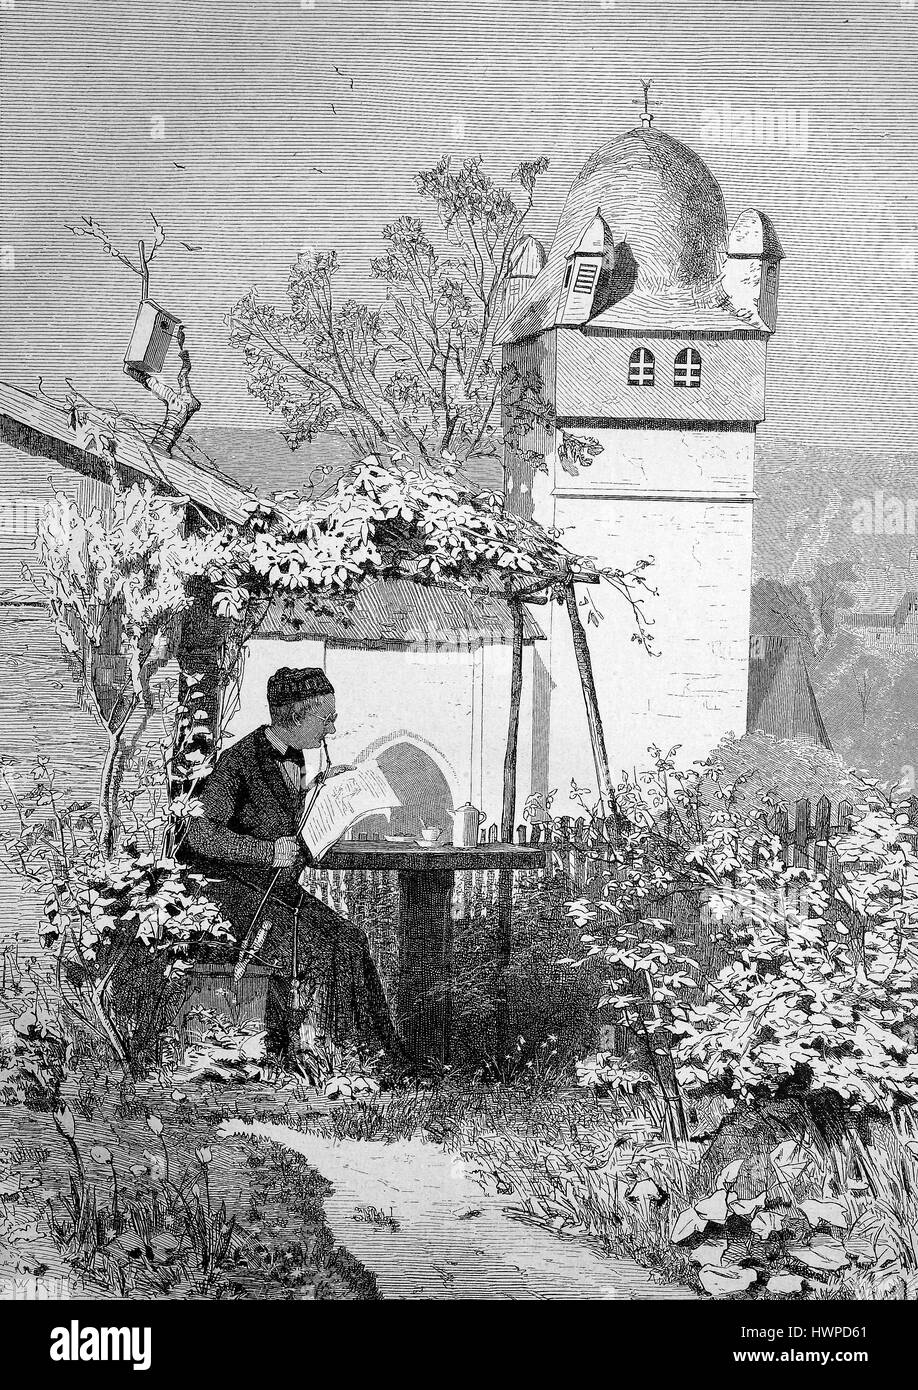 Spring, a priest sits in the garden and is working on his sermon, Reproduction of an original woodcut from the year - Stock Image